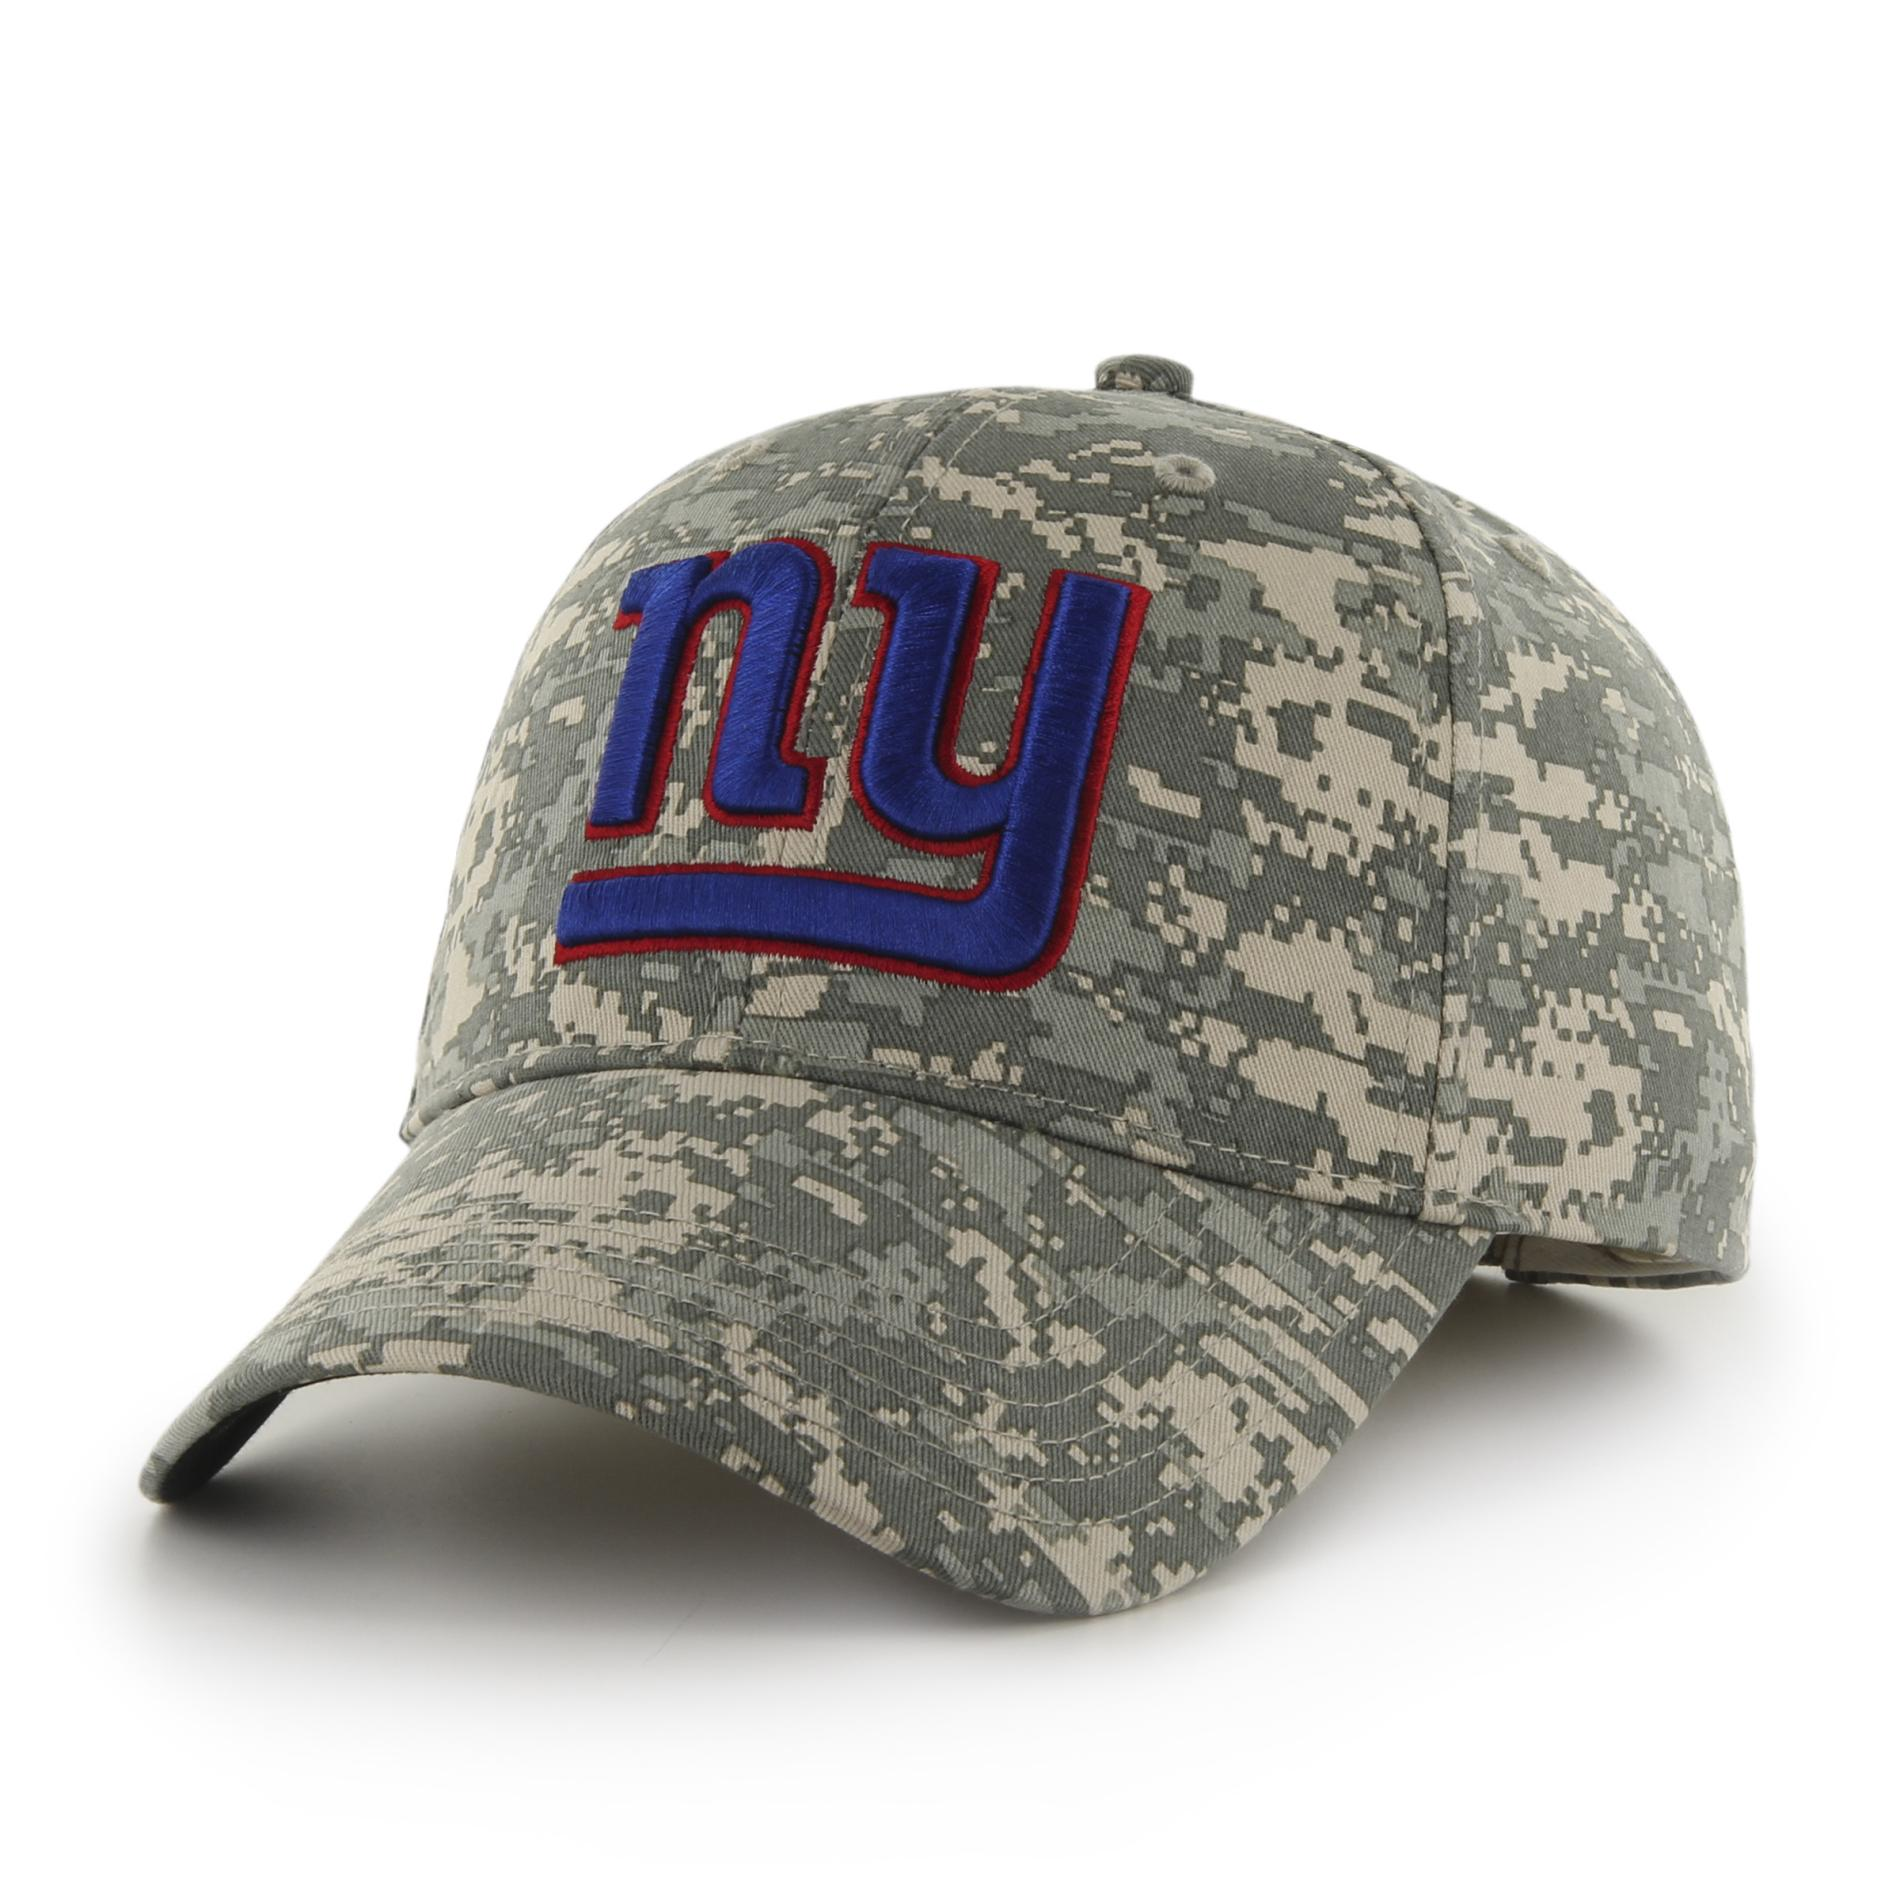 a675ad735c5a44 Sports Hats New York Giants